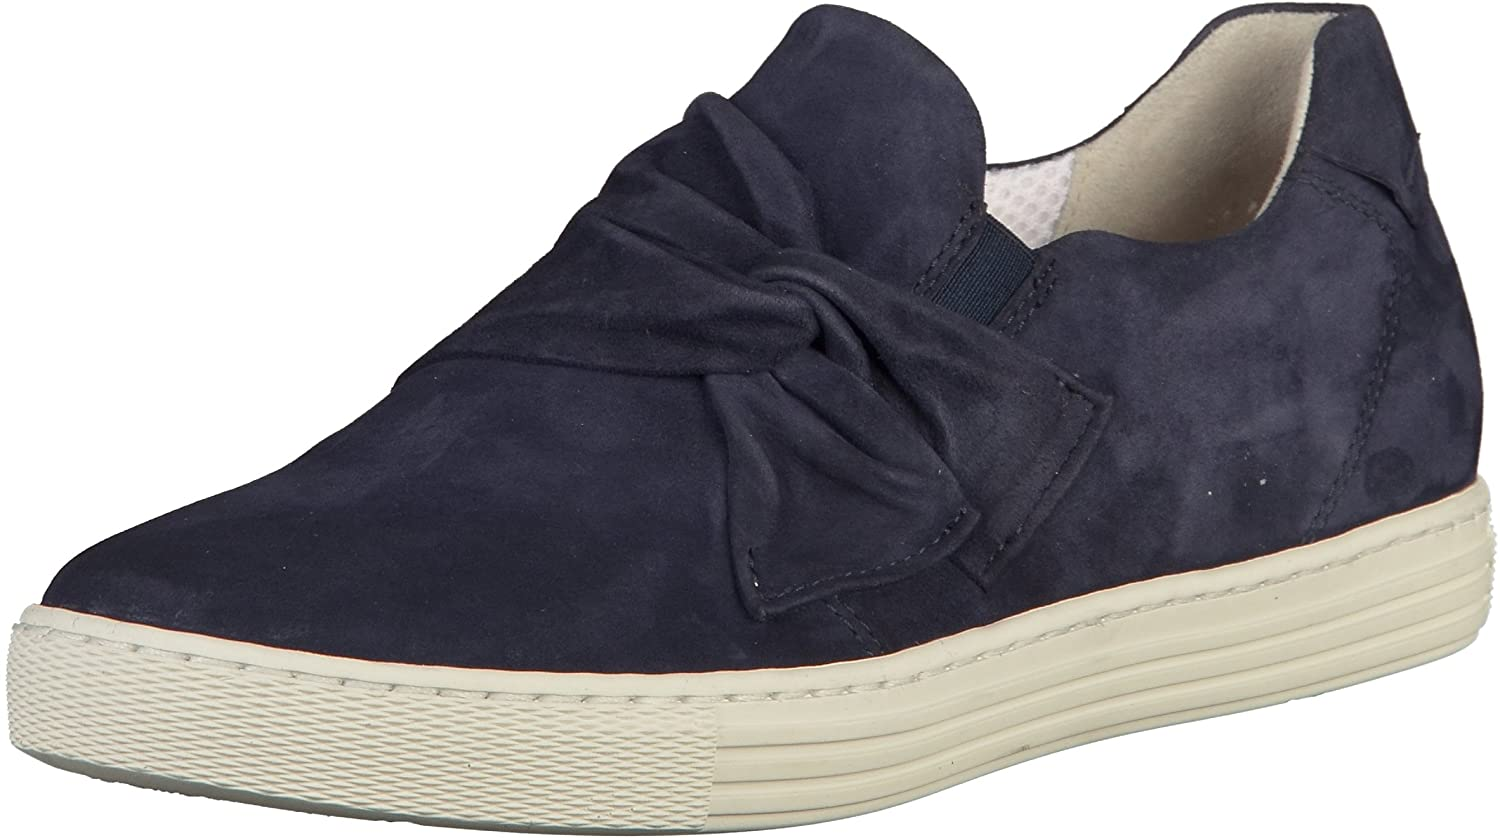 Gabor Actor Womens Slip On Trainer Shoes